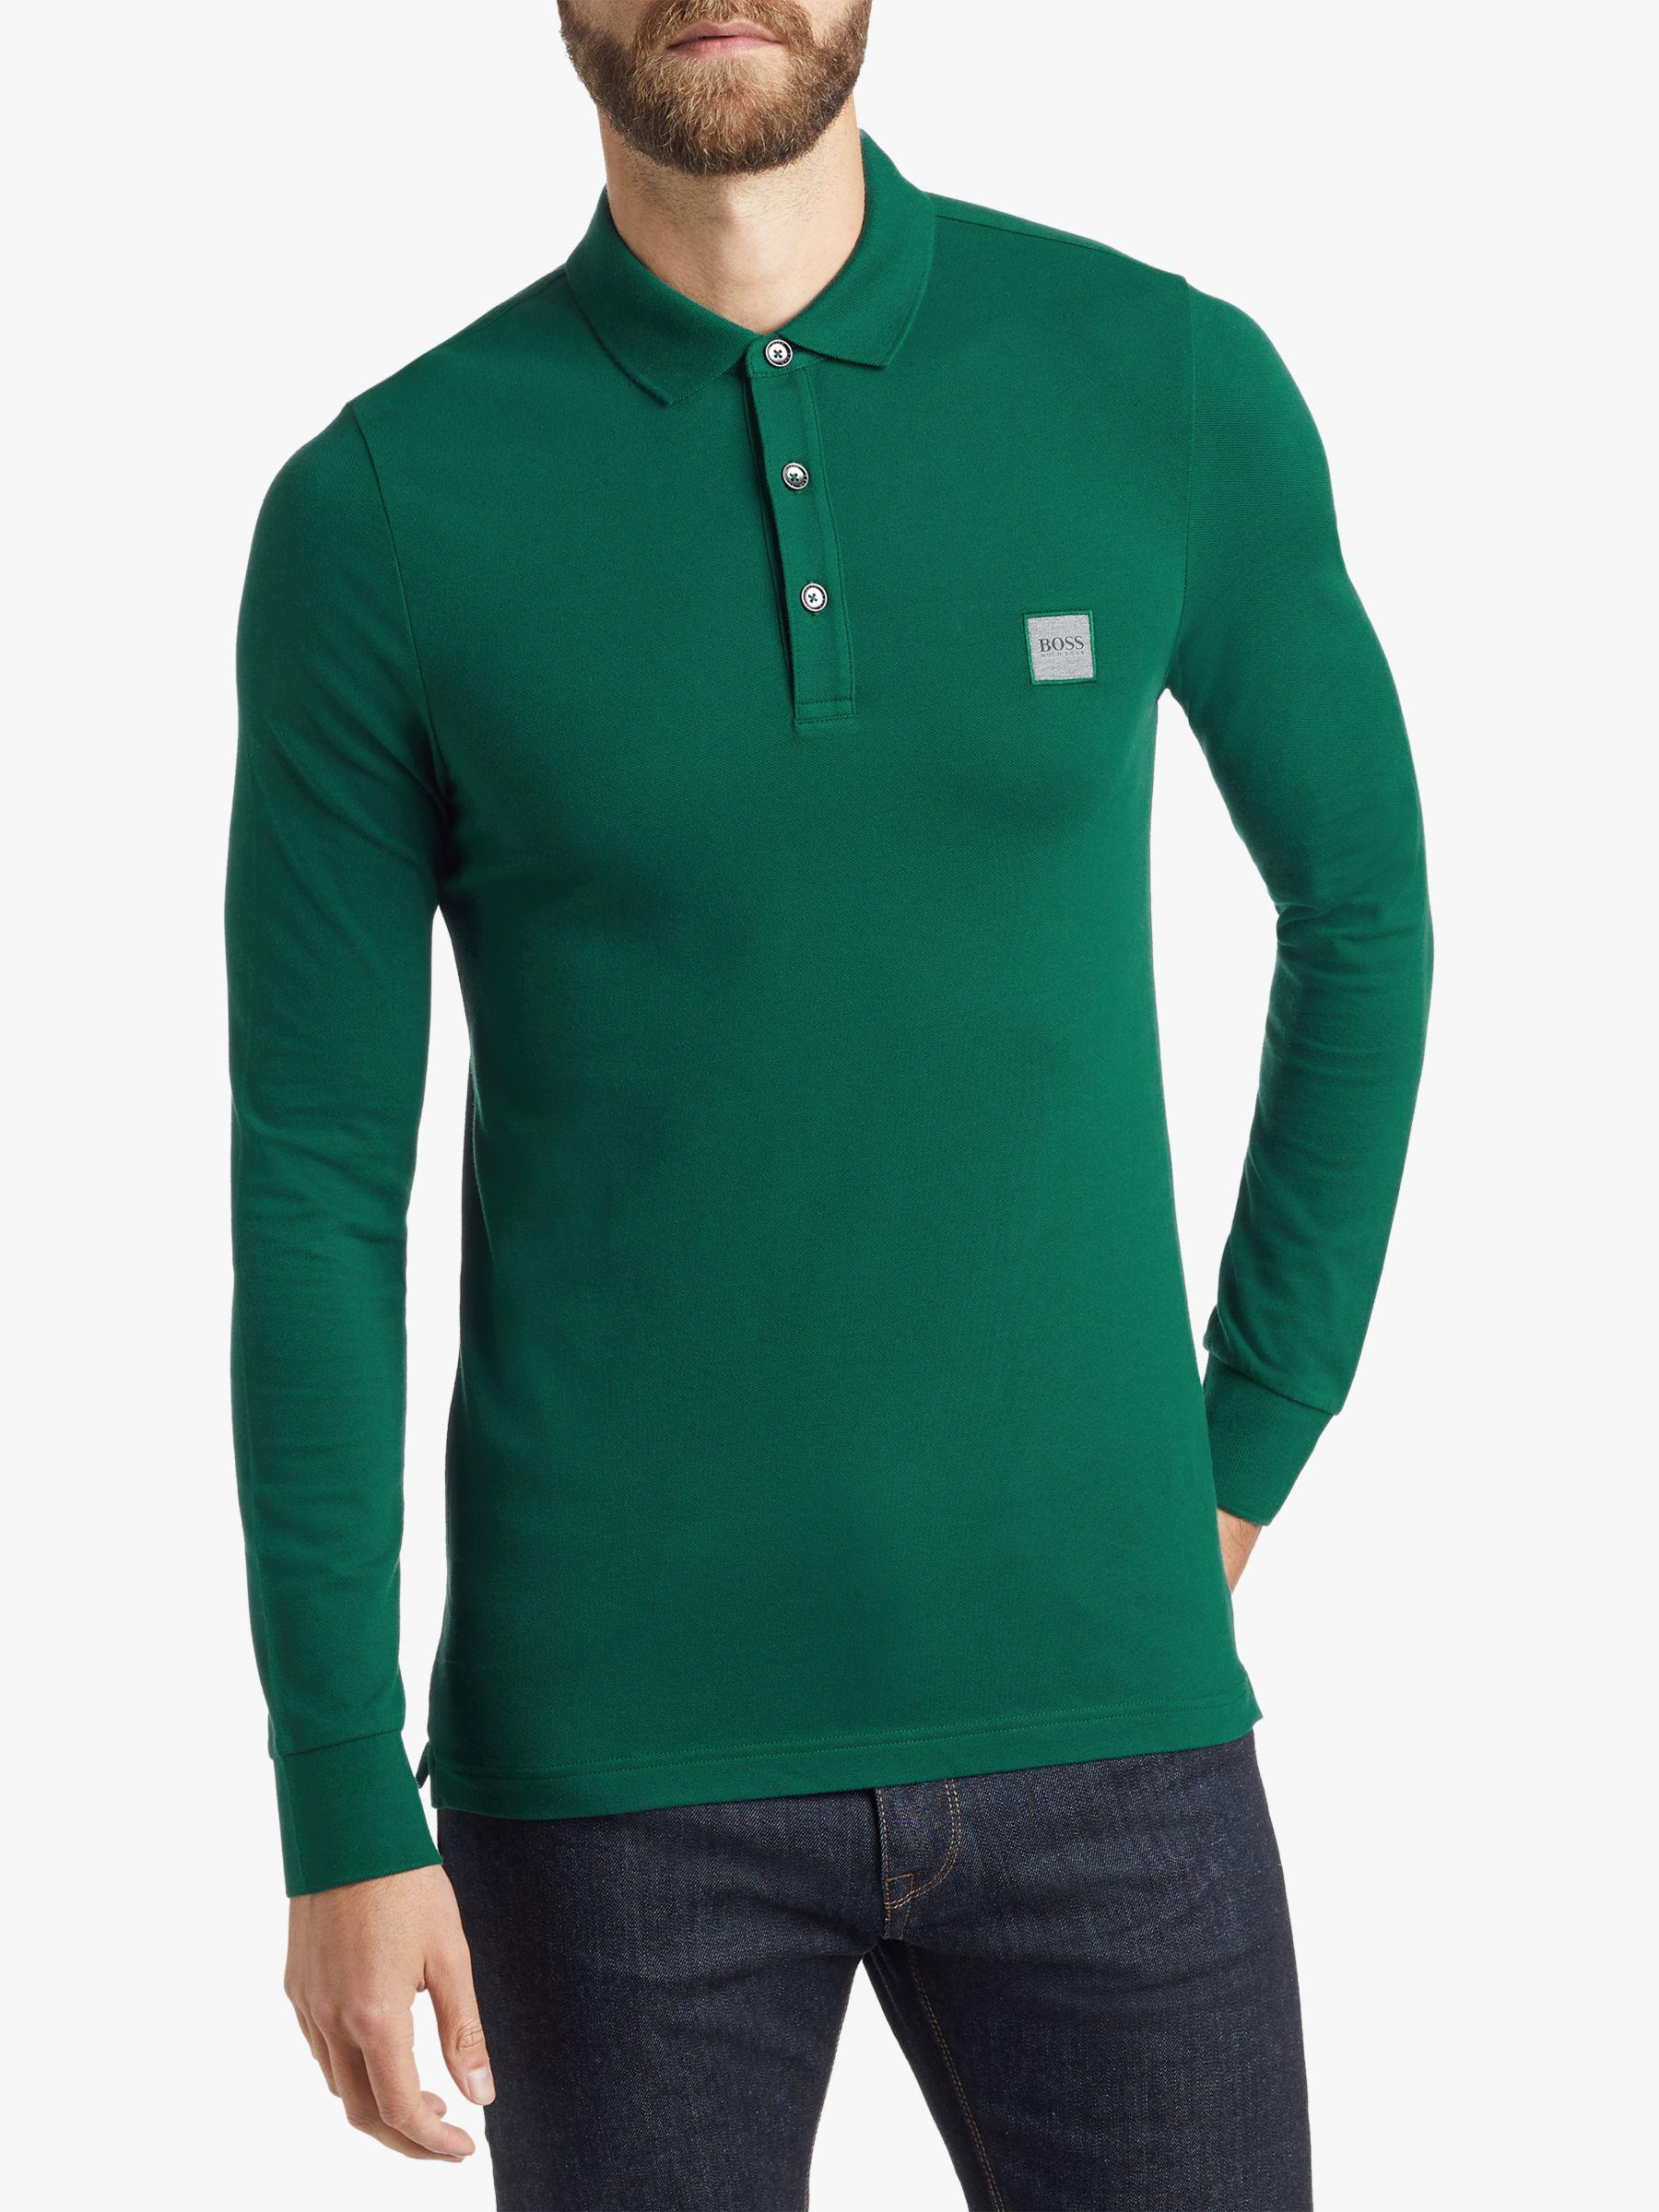 ccddee6f BOSS Boss Passerby Long Sleeve Polo Shirt in Green for Men - Lyst